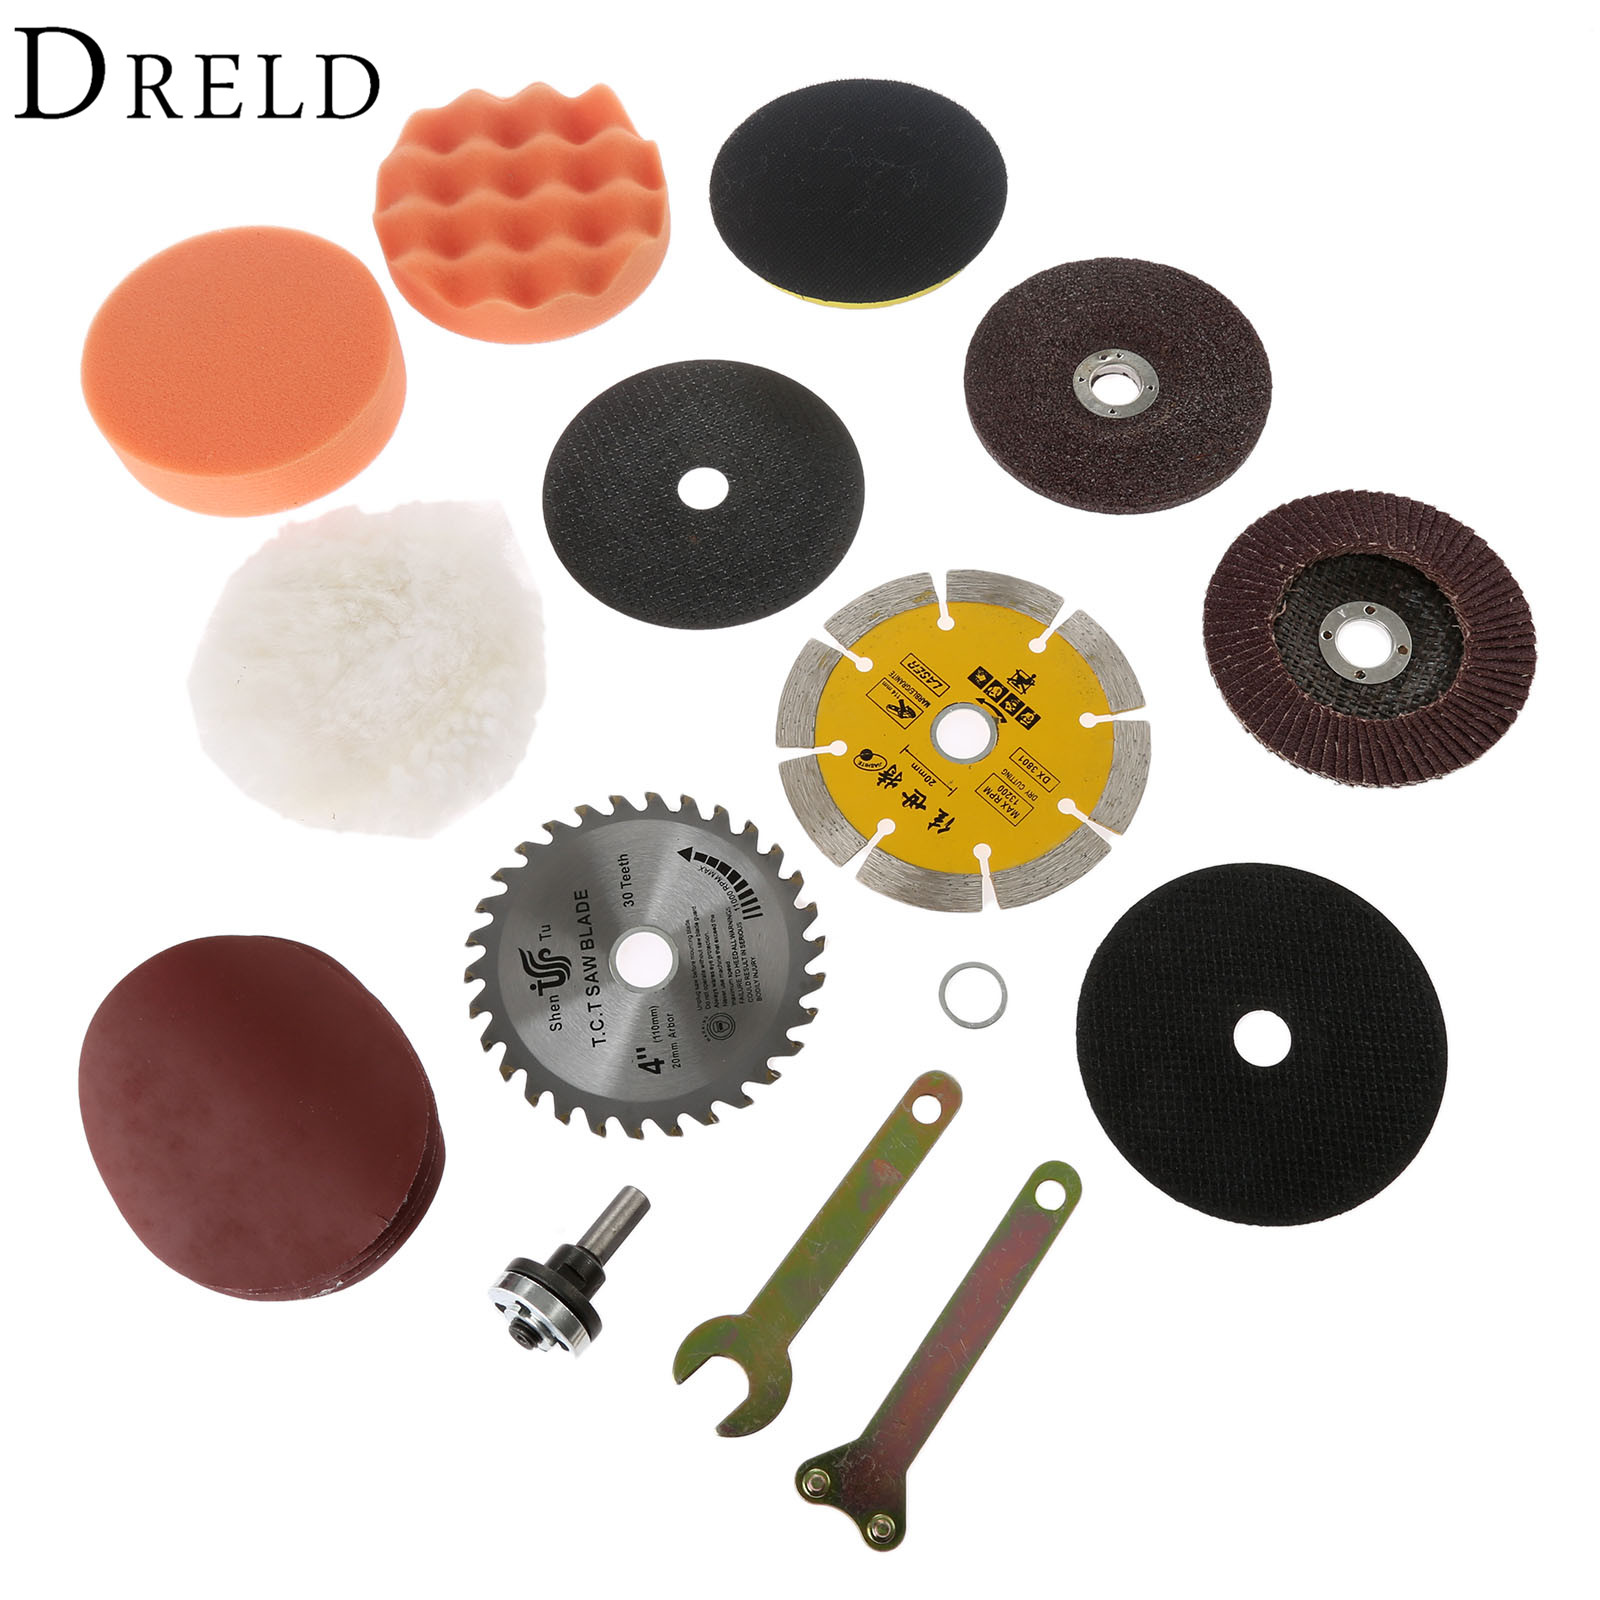 10Pcs Metal Cutting Polishing Pad Marble Grinding Wheel Saw Blade Spanner Conversion Kit for Electric Drill Power Tools miniature vibration polishing grinding polisher machine flacker remove metal burrs cleaning metal surface stains 220v 110v